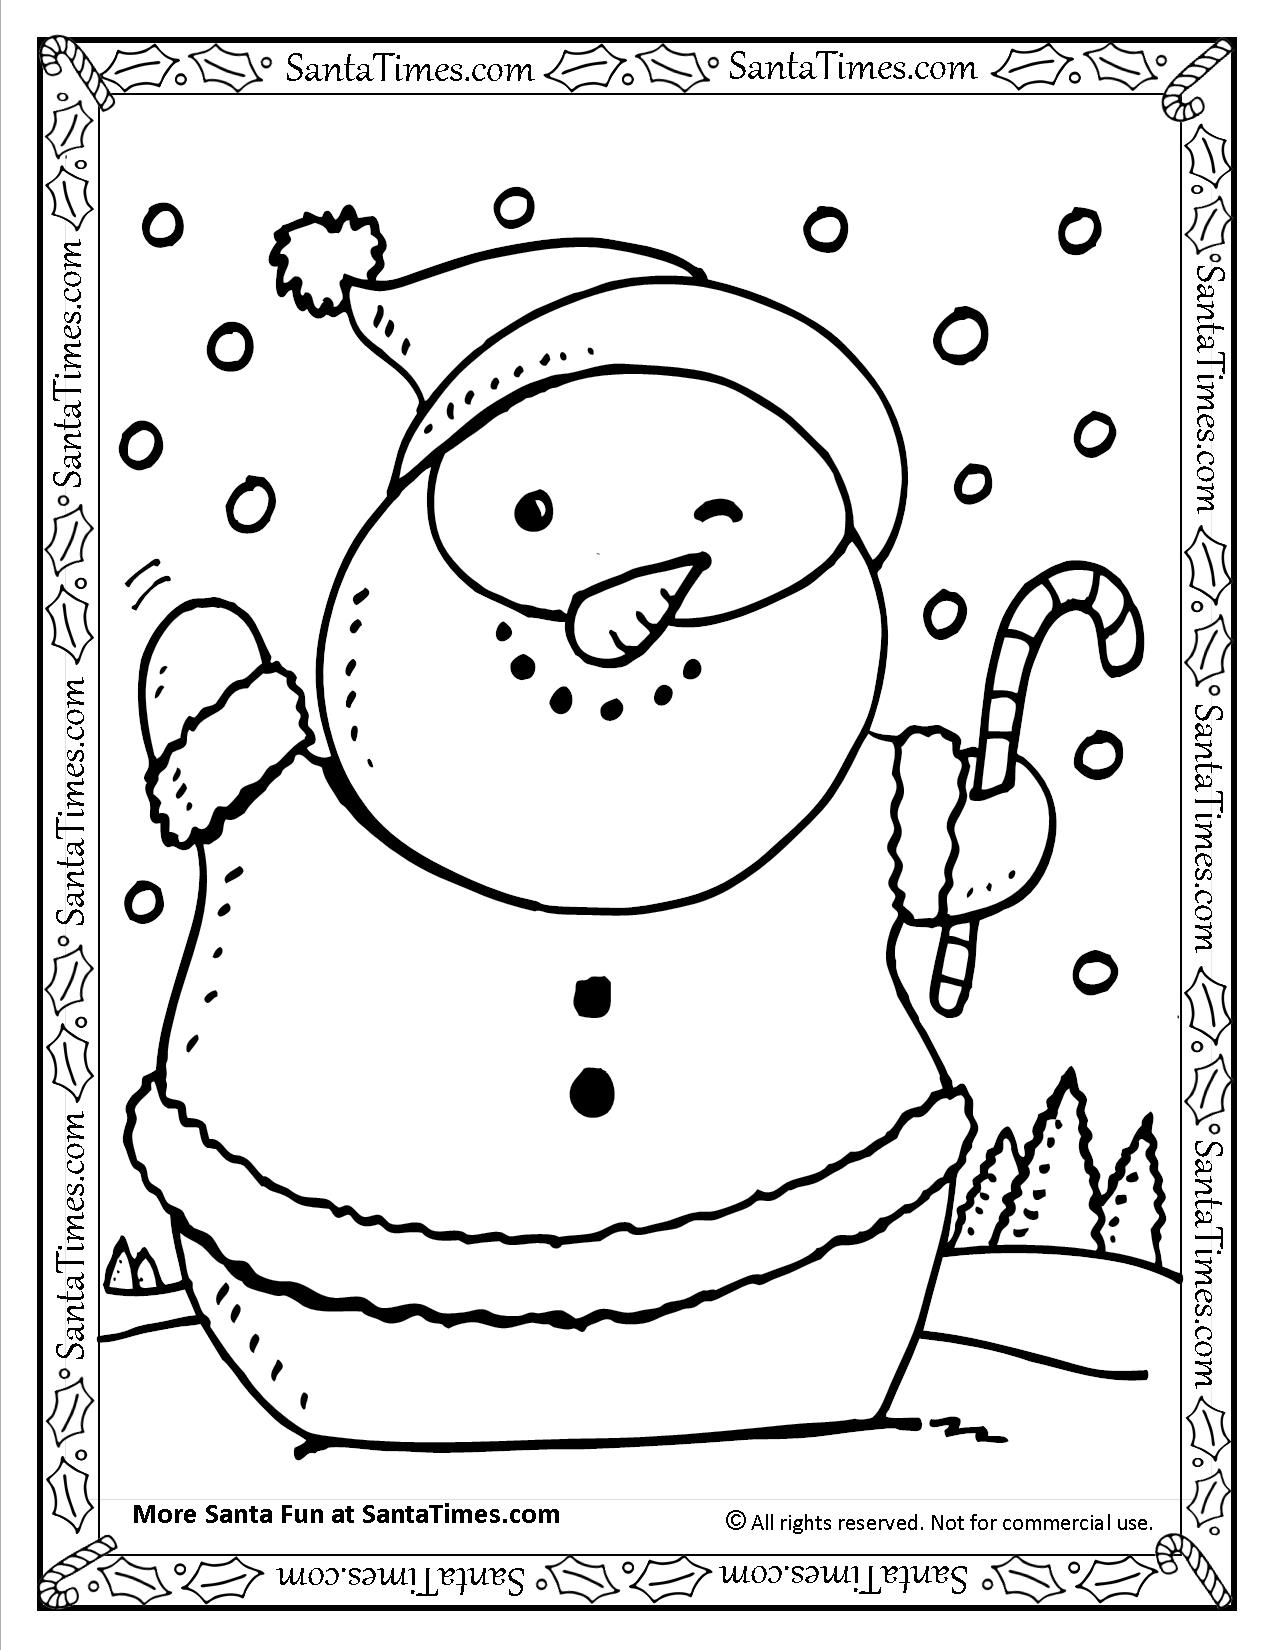 graphic about Snowman Printable Coloring Page called Santa Snowman Printable Coloring Website page